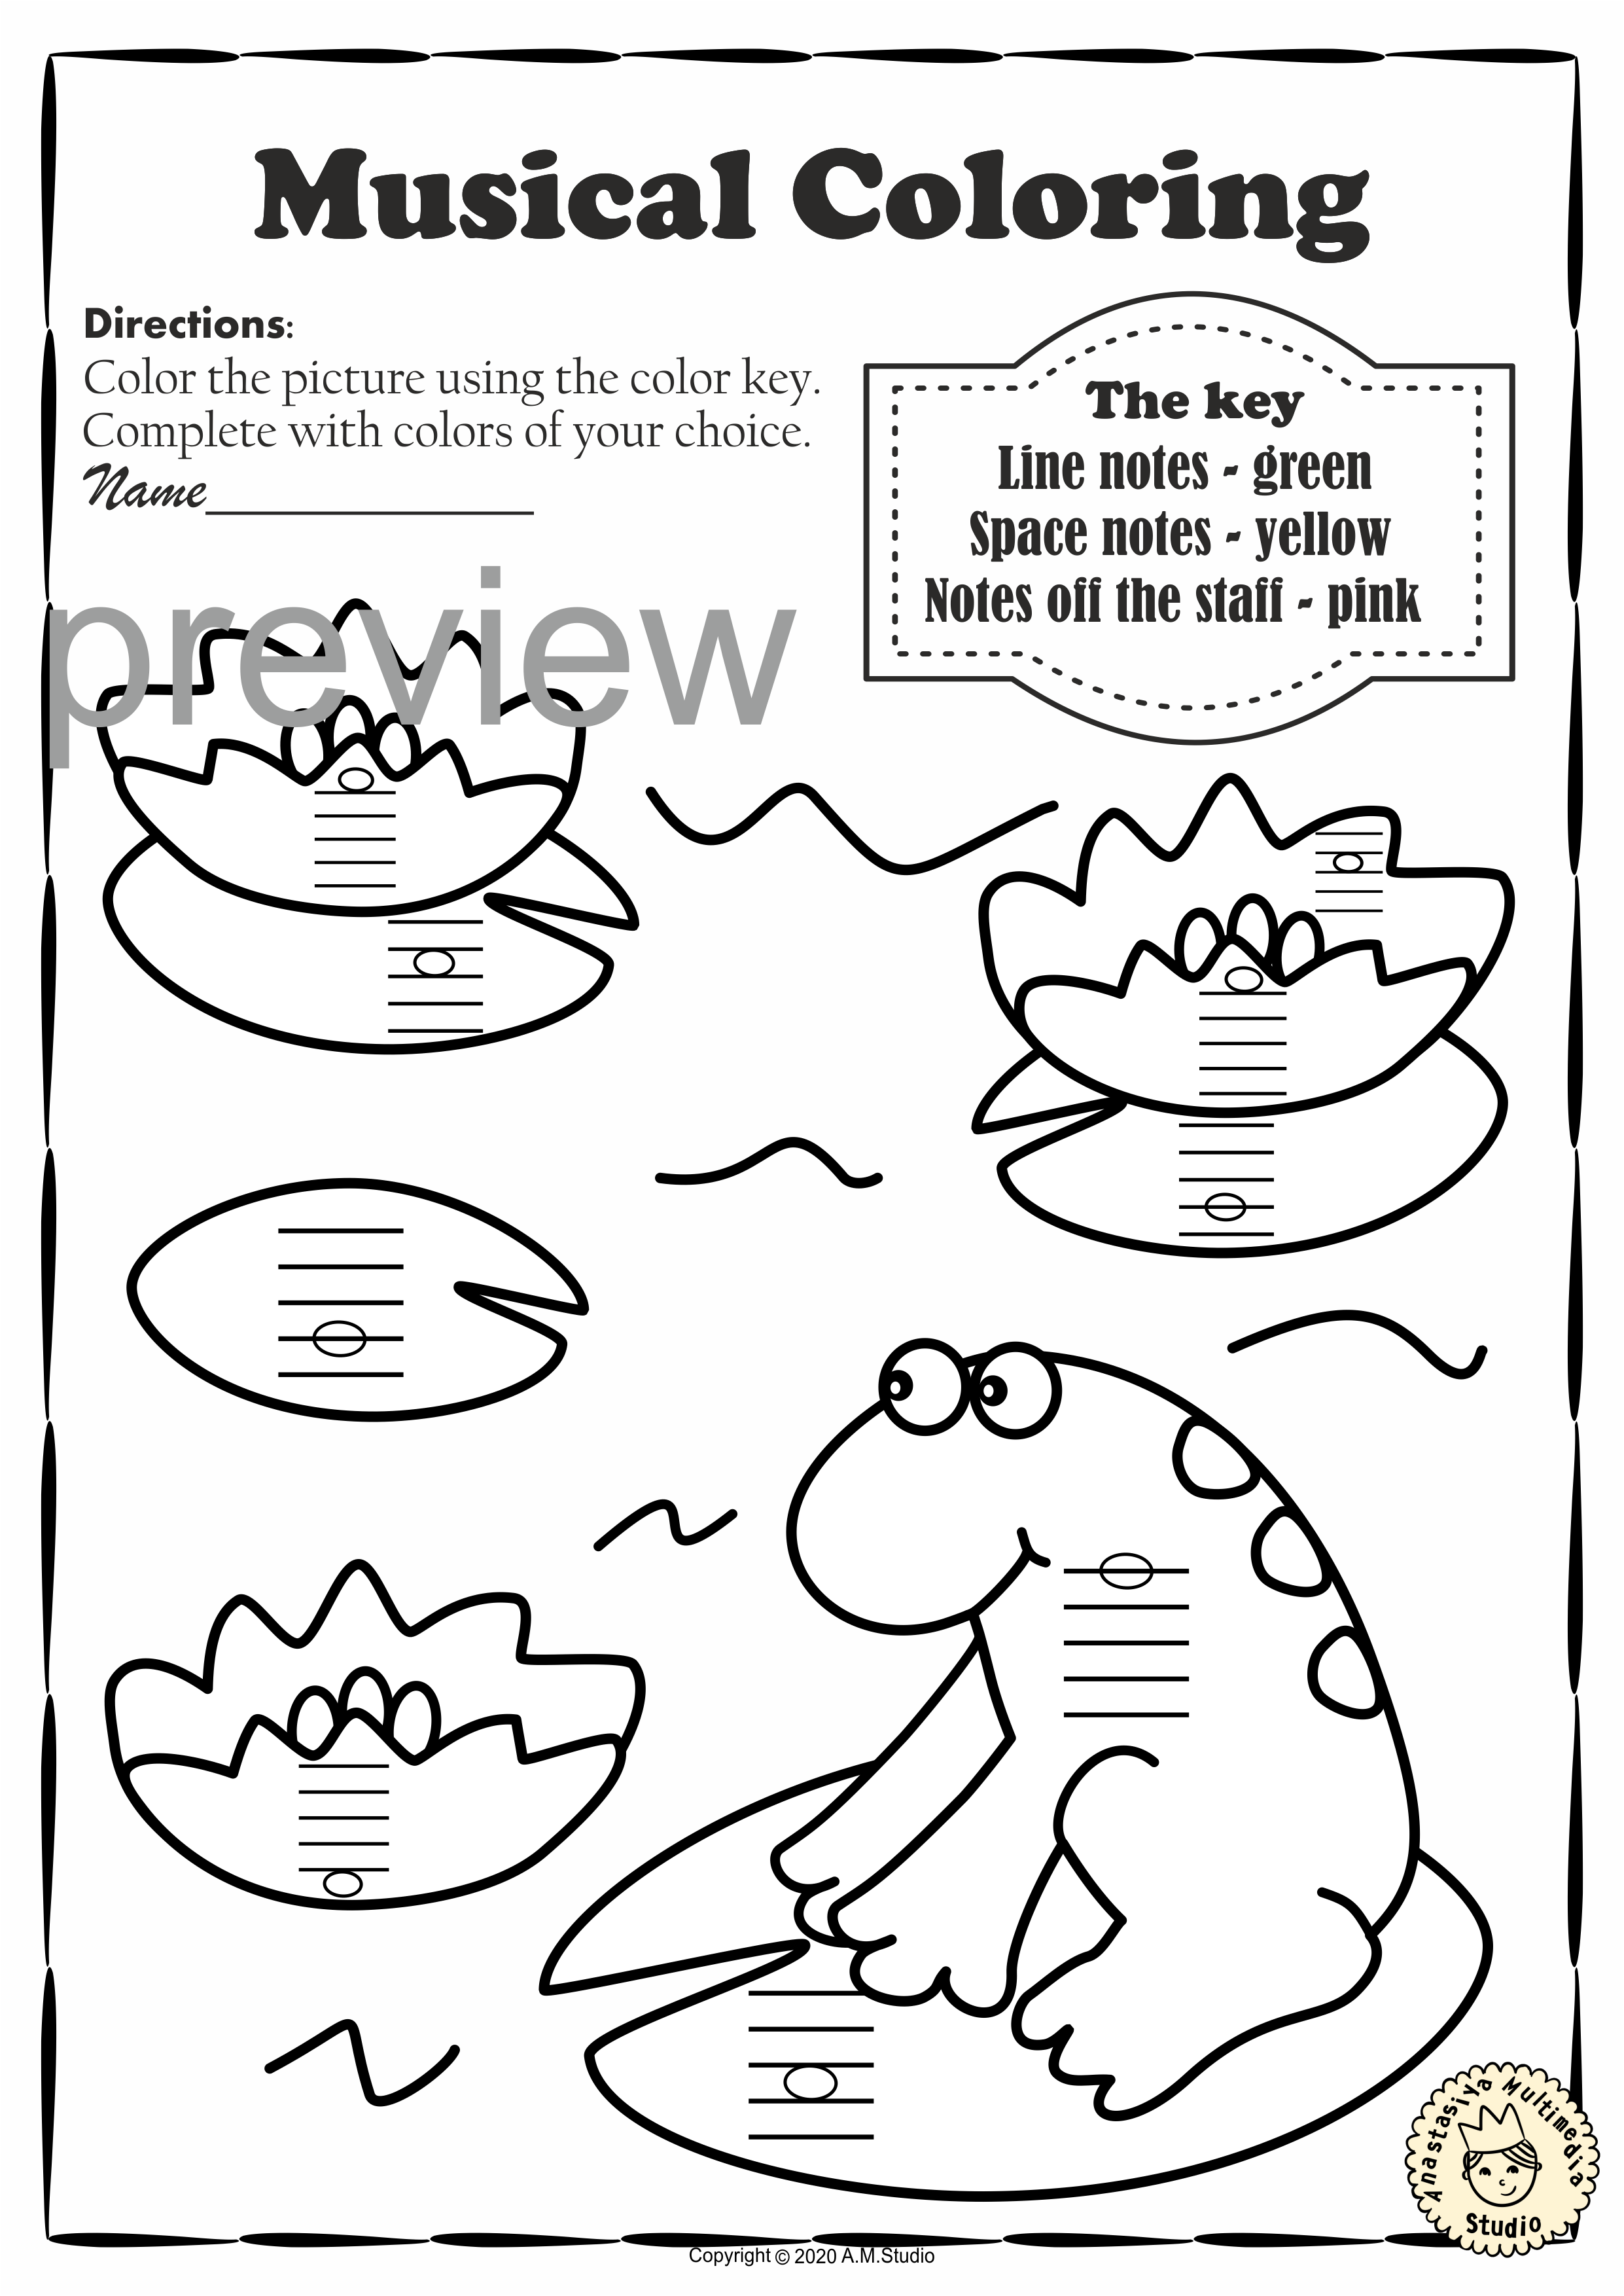 Musical Coloring Pages For Summer Color By Lines And